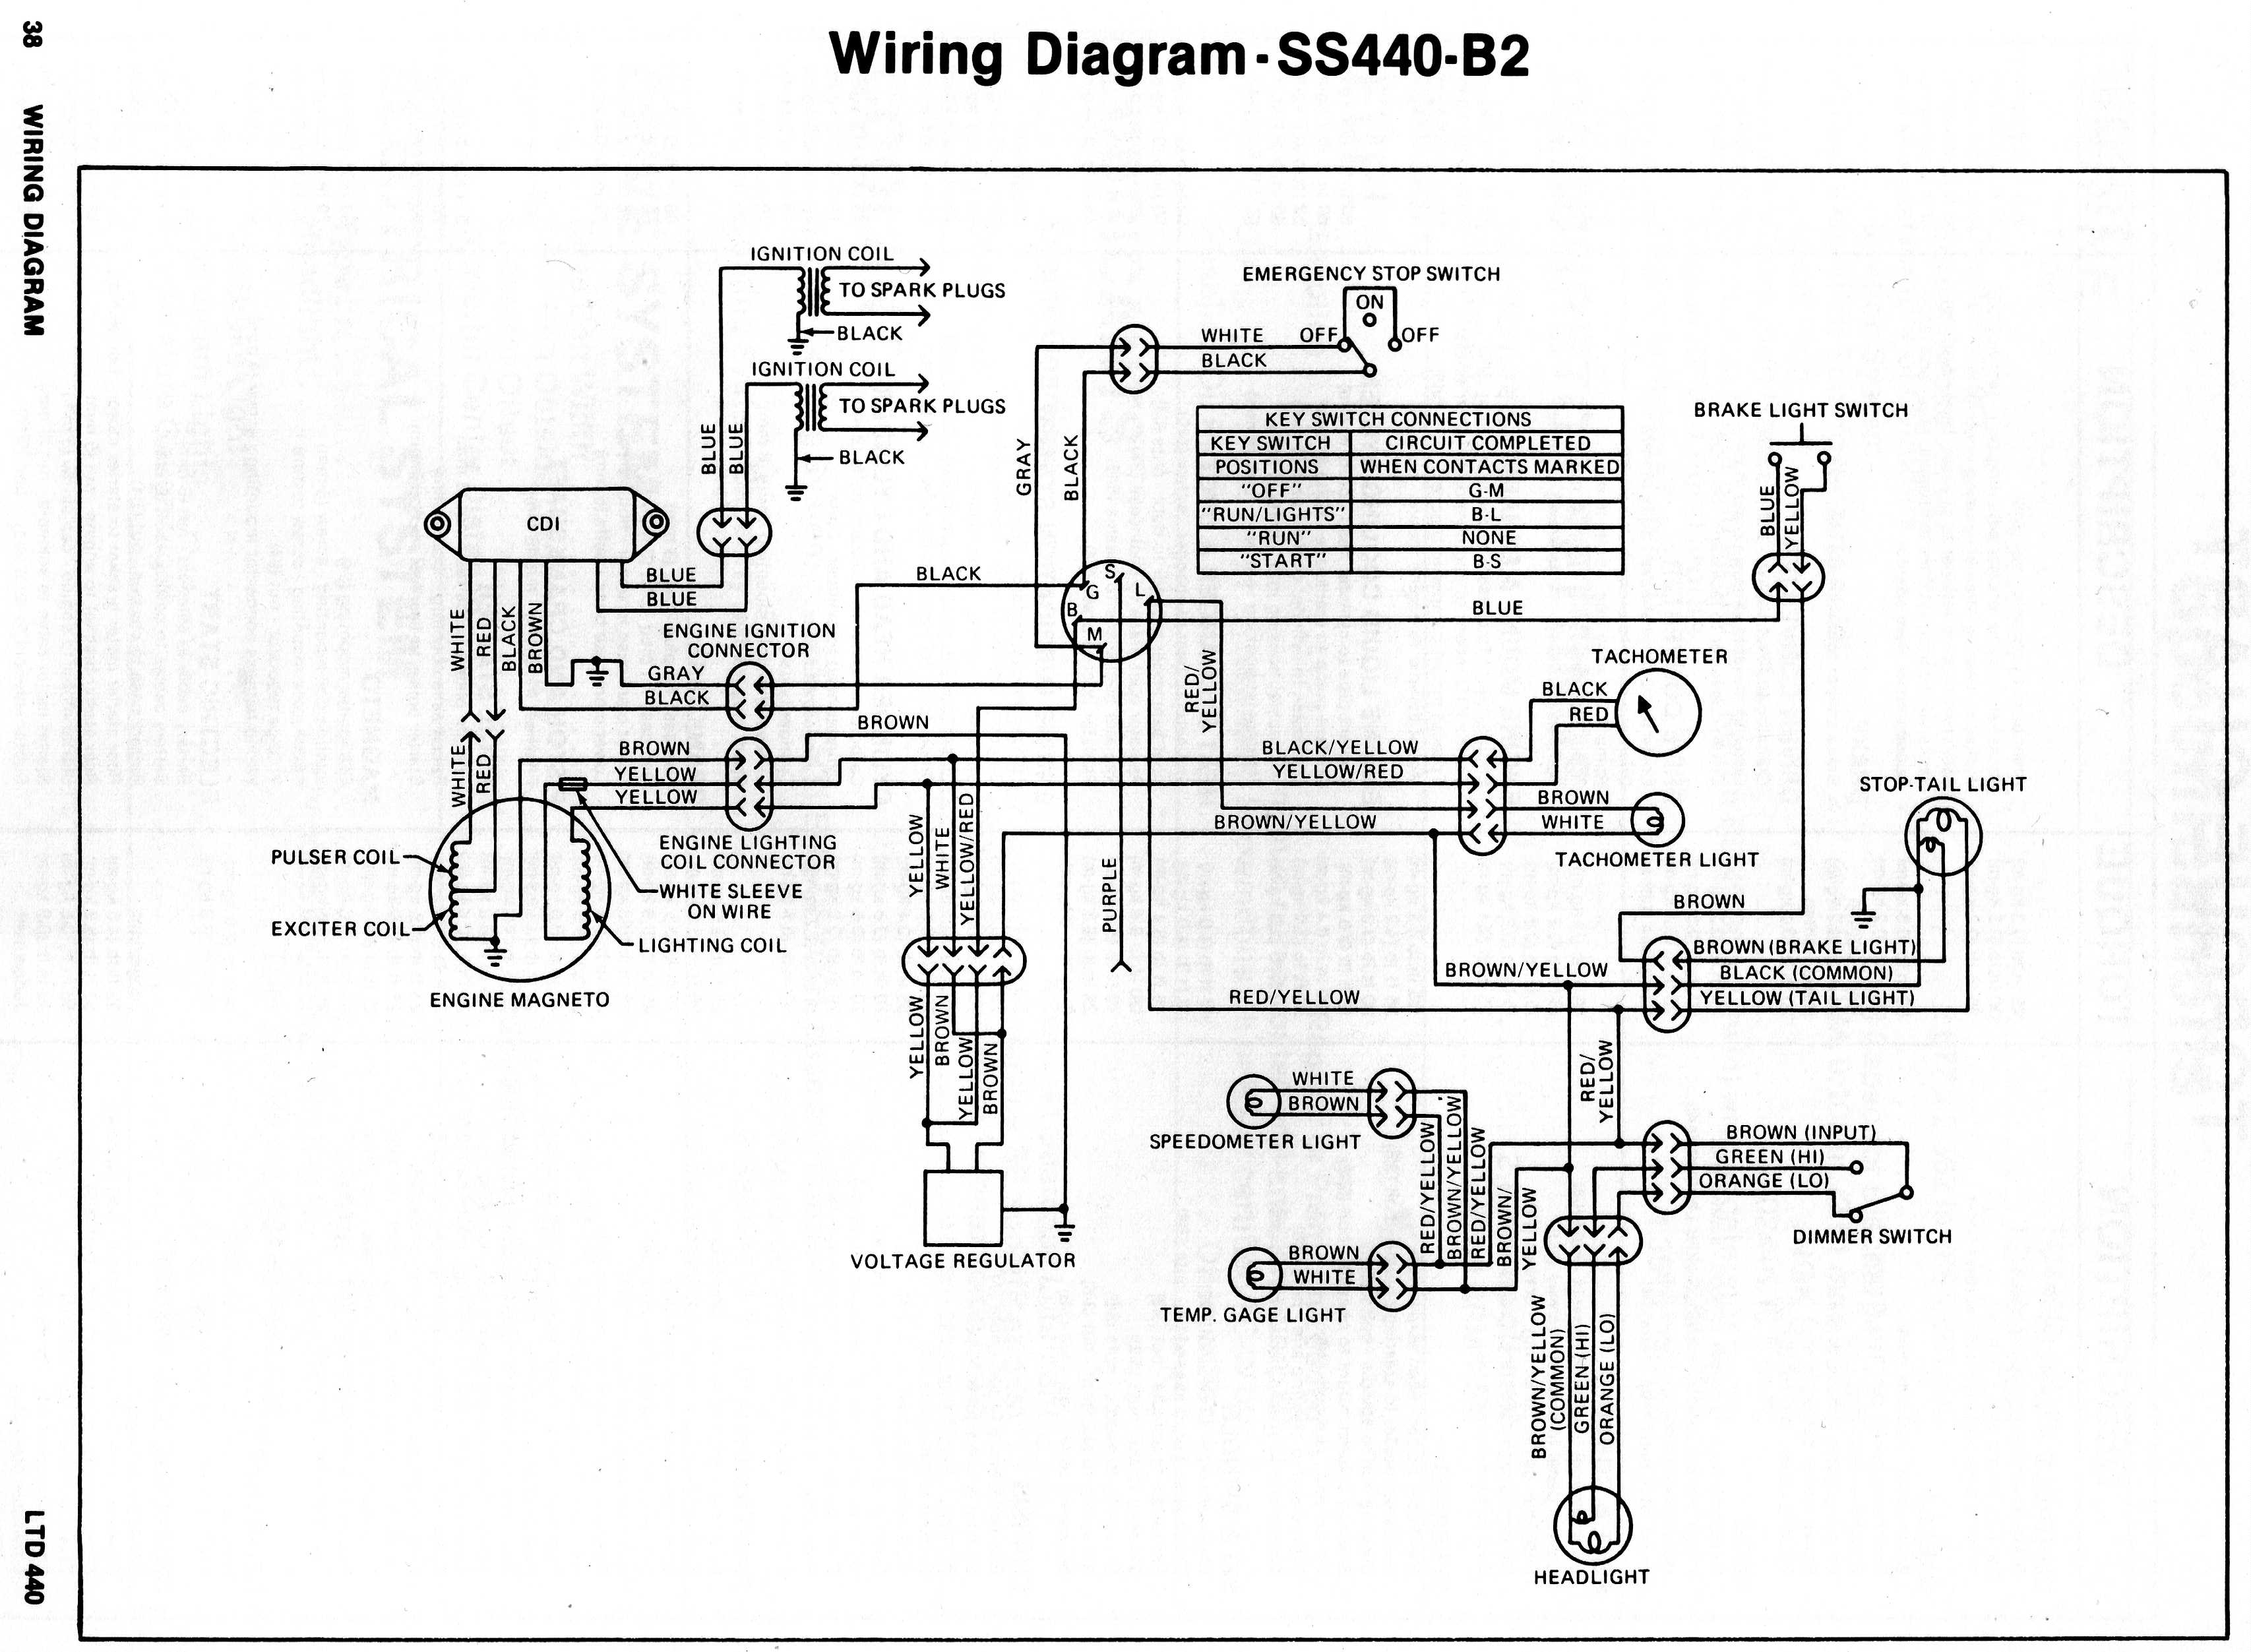 Zl1000 Wiring Diagram Library 1981 Chevy Caprice Kawasaki Invader Snowmobile Diagrams Rh Kawisncats Freevar Com 1980 Kz750